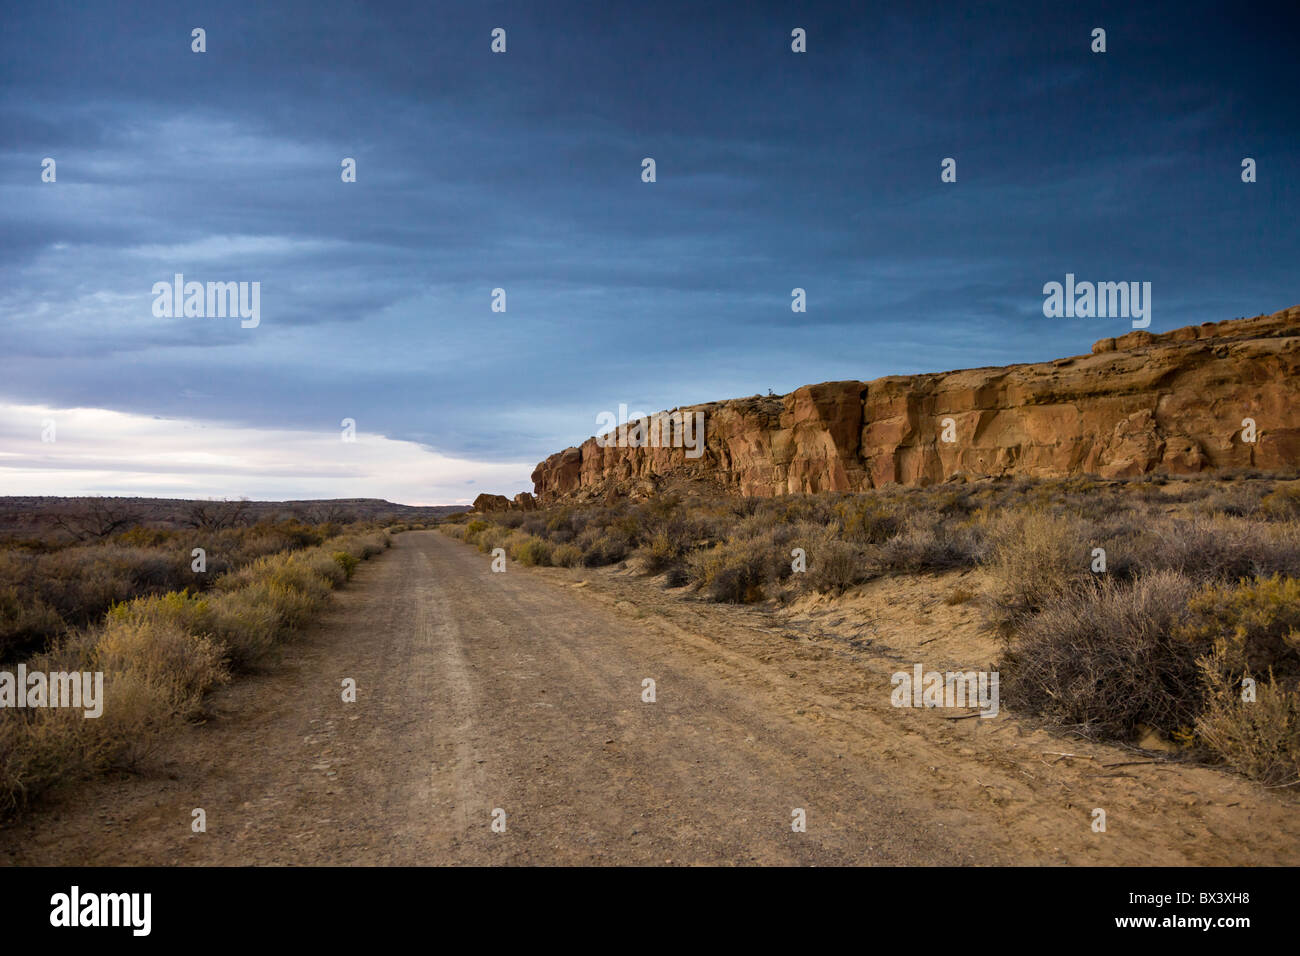 Desert road going through Chaco Canyon in the Chaco Culture National Historic Park in Chaco Canyon, New Mexico USA. - Stock Image